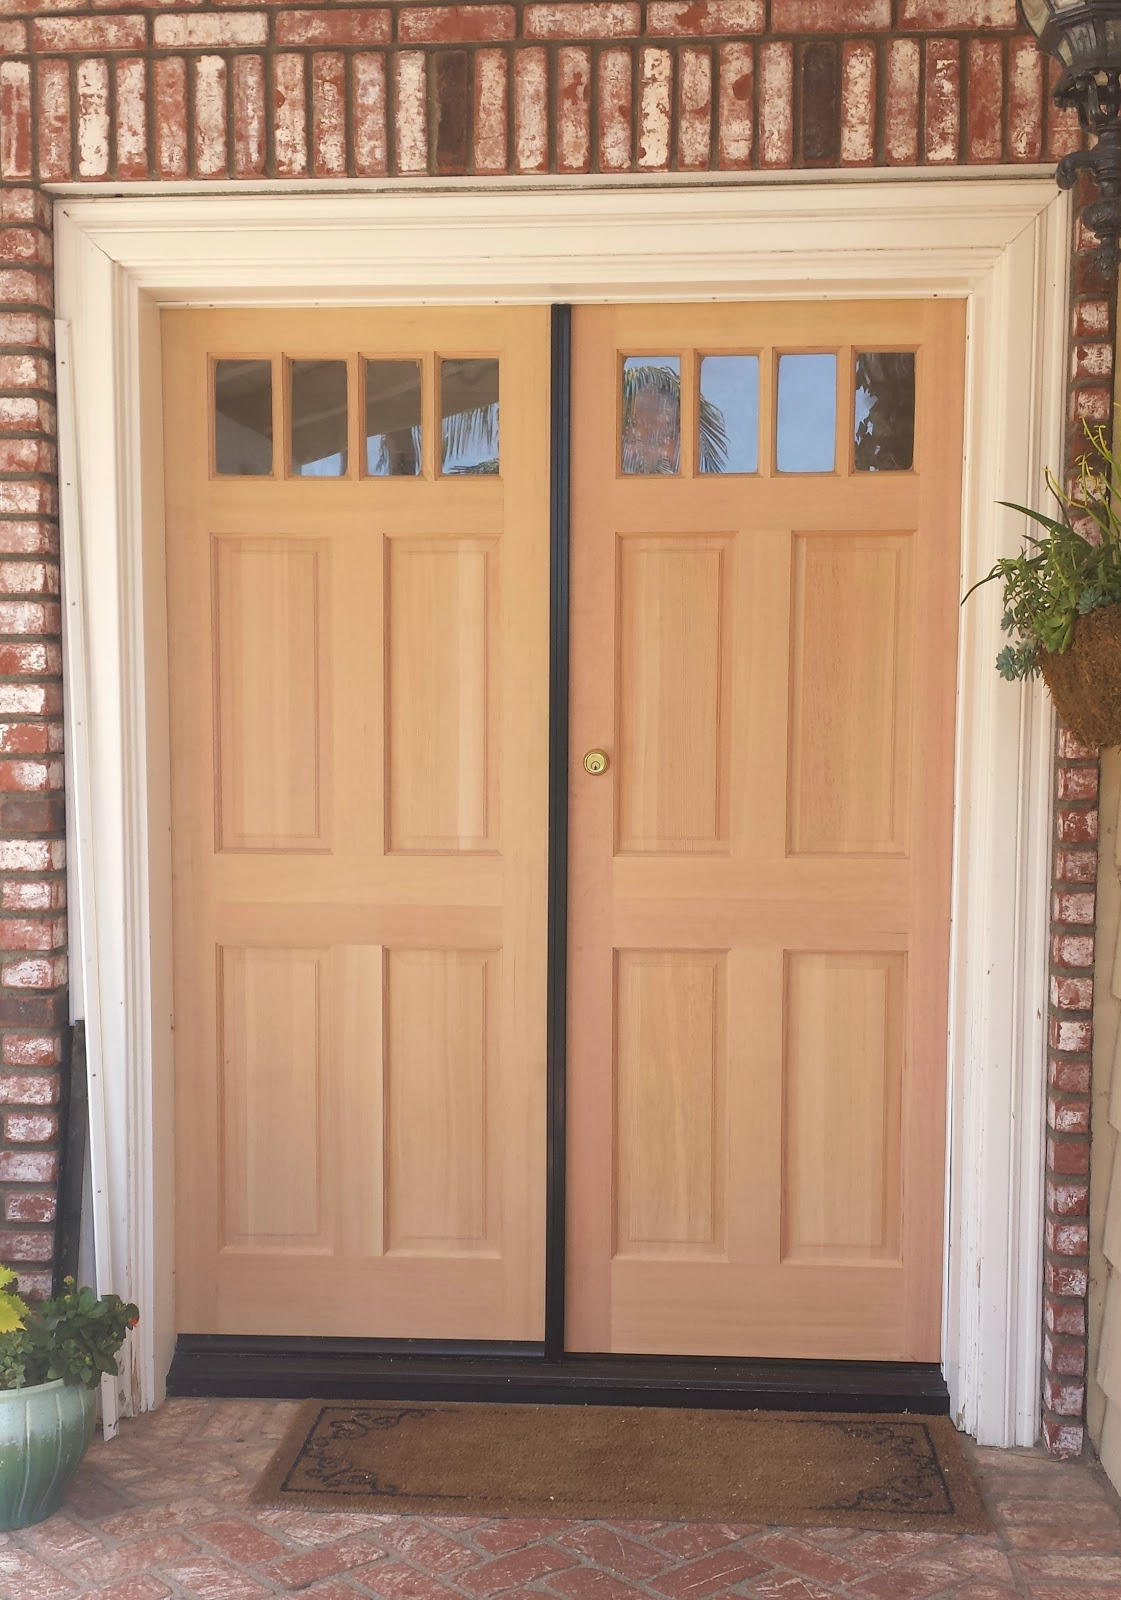 Ciao newport beach knock knock a front door makeover for Looking for front doors